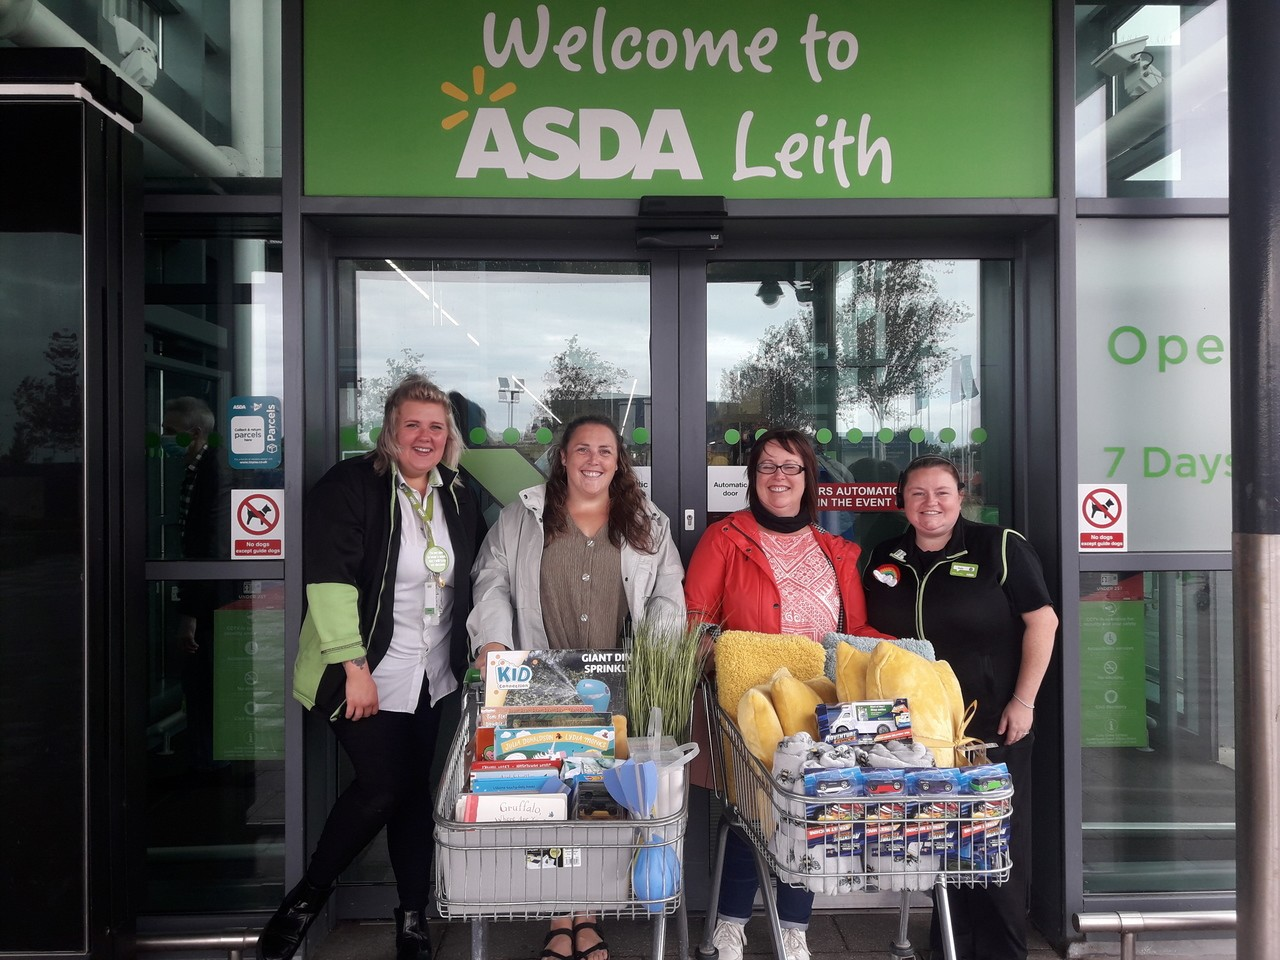 Asda support Pirniehall and St David's Nursery after vandalism to their playground | Asda Leith